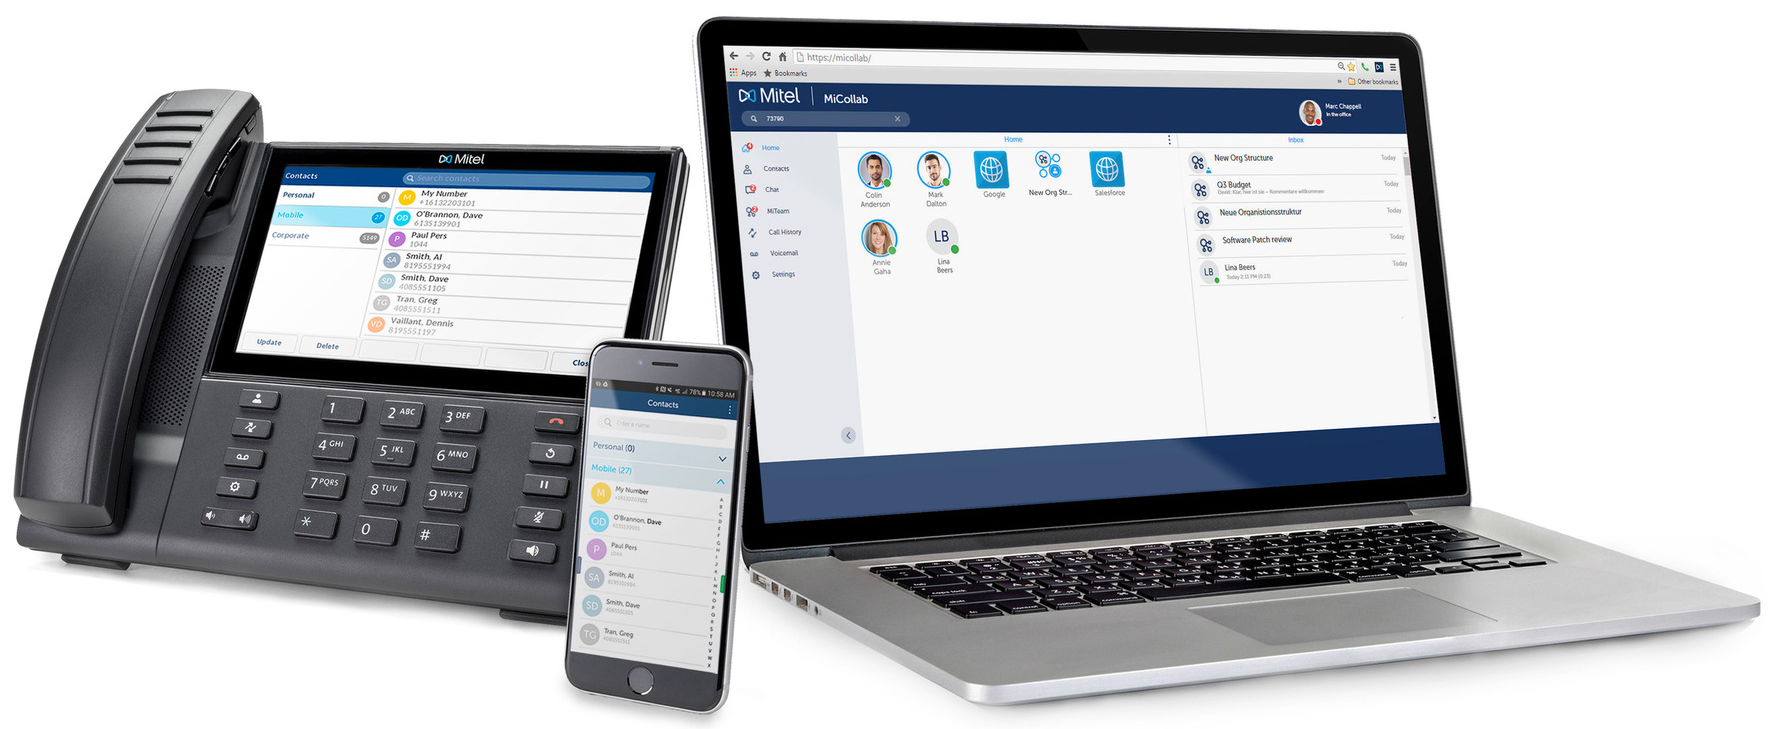 Mitel Unified Communications Trio on landline, mobile phone, and laptop